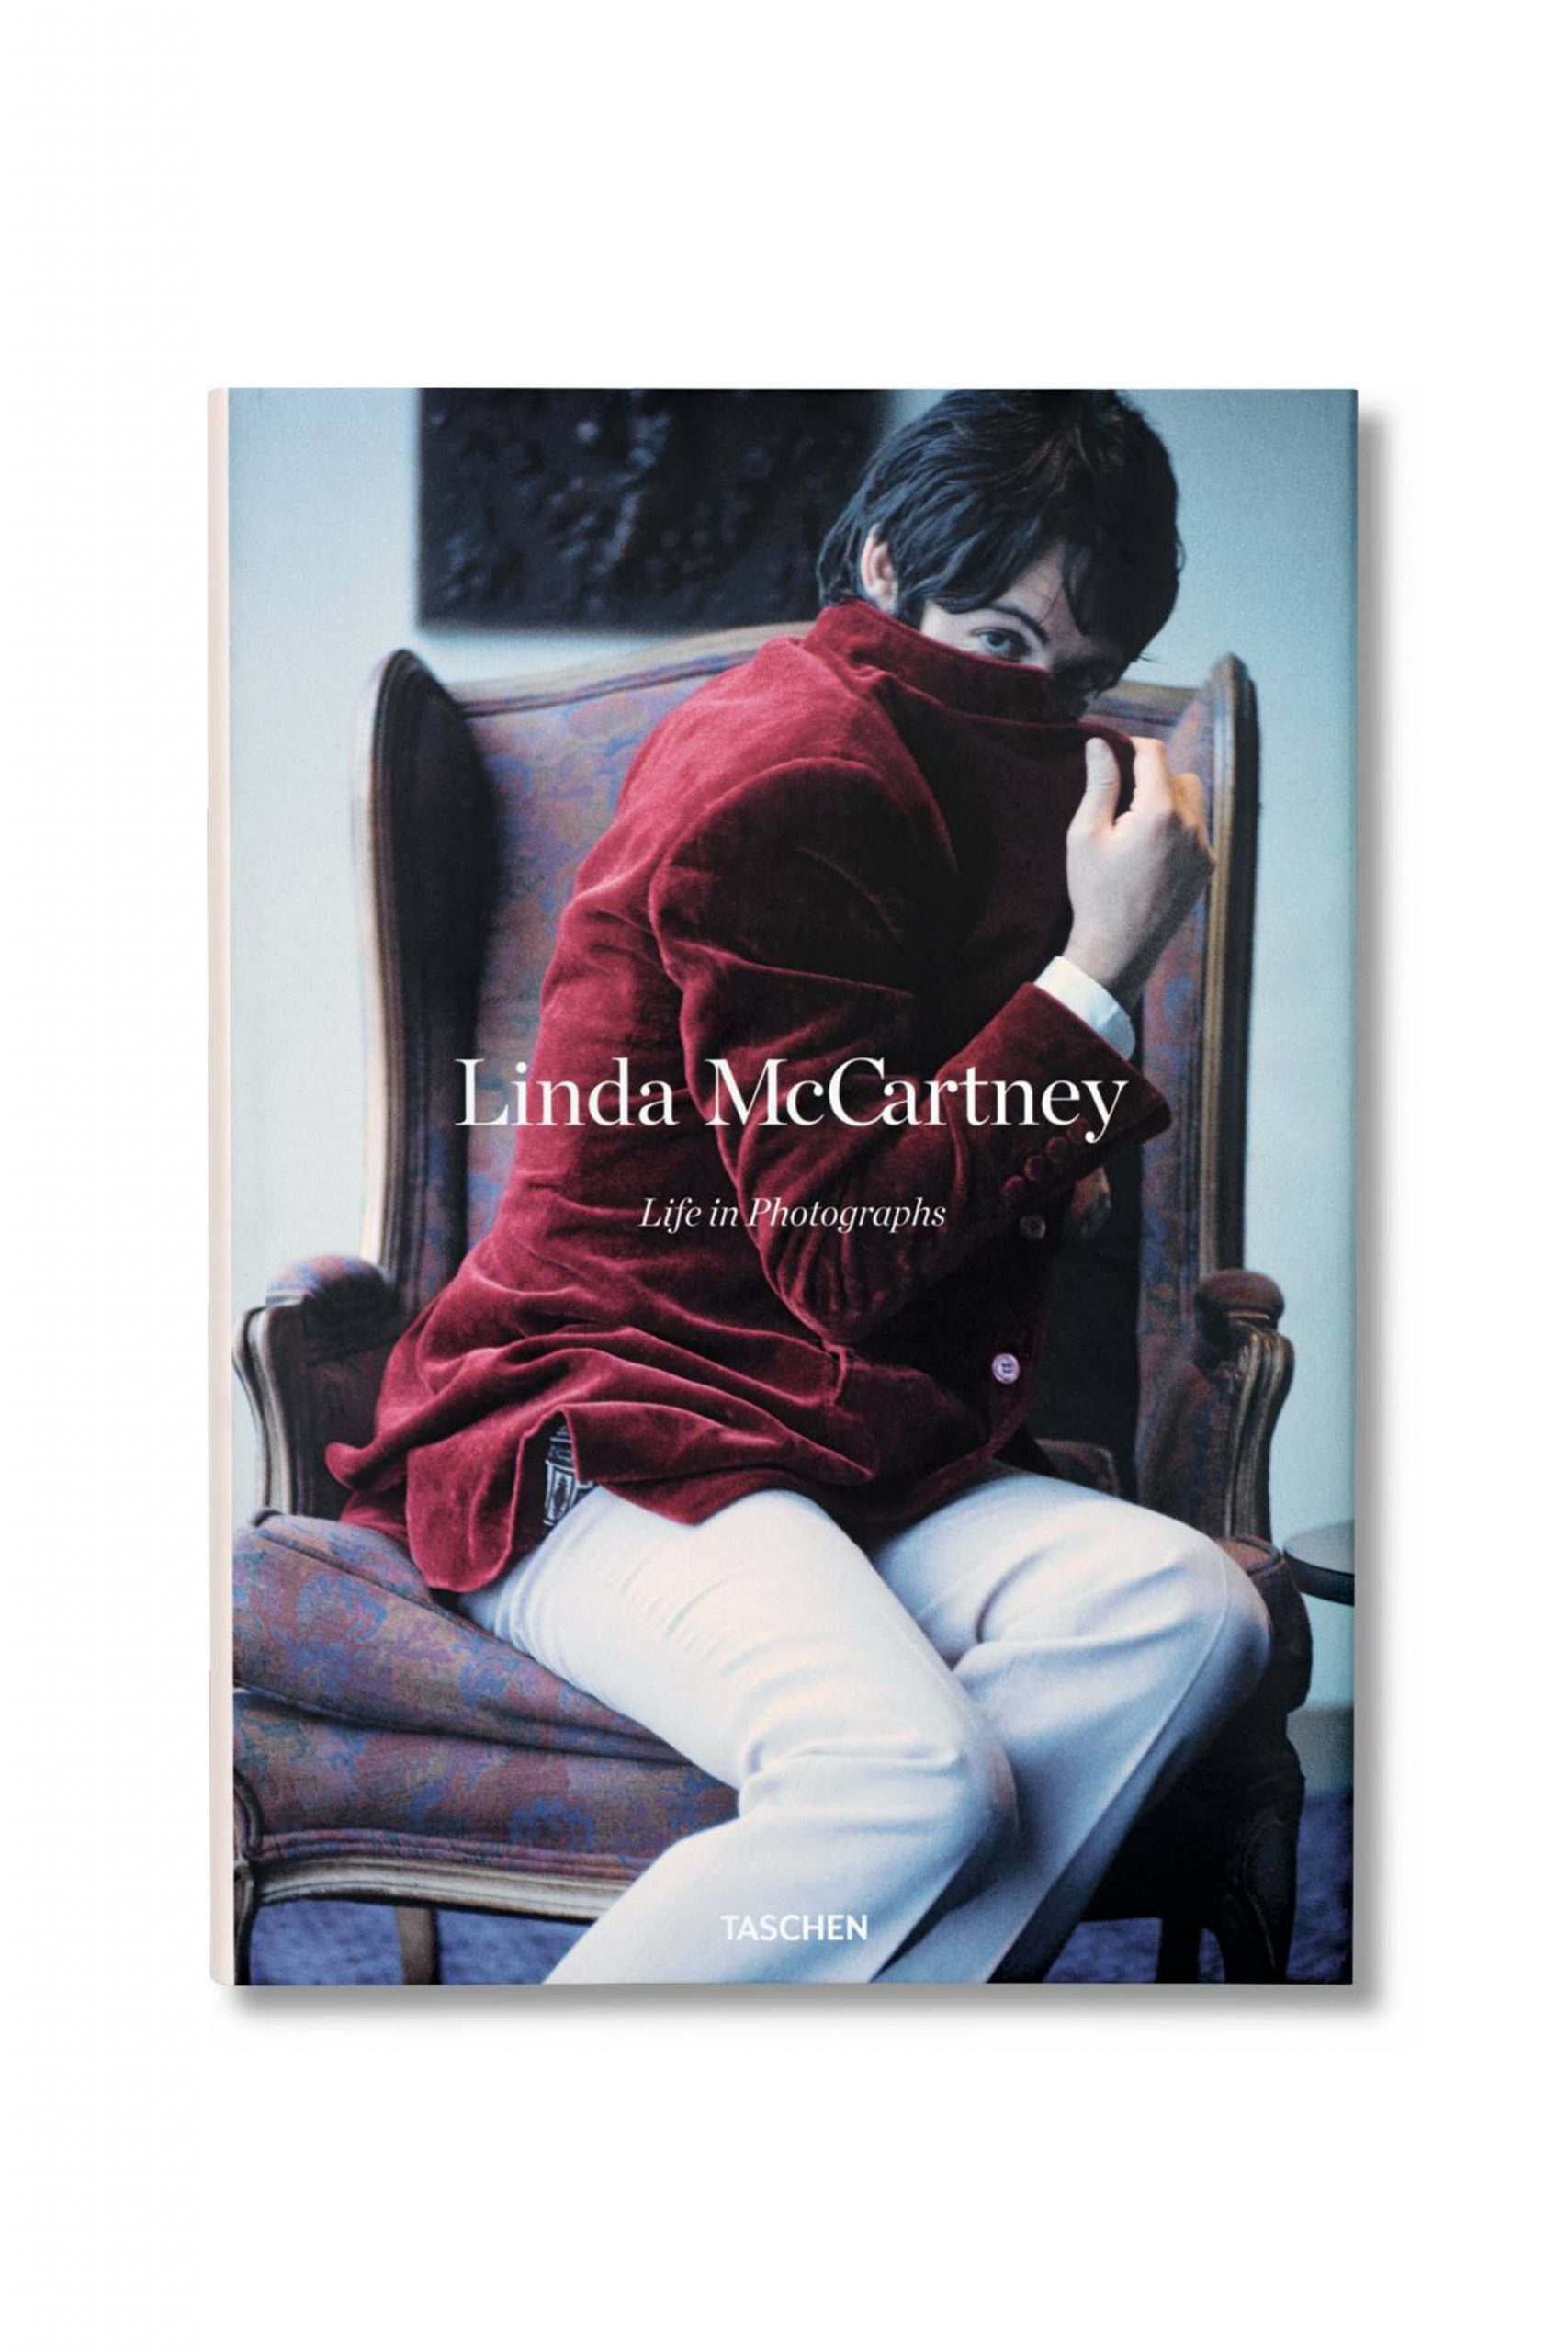 <p class='small-title'>TASCHEN</p>LINDA MCCARTNEY LIFE IN PHOTOGRAPHS